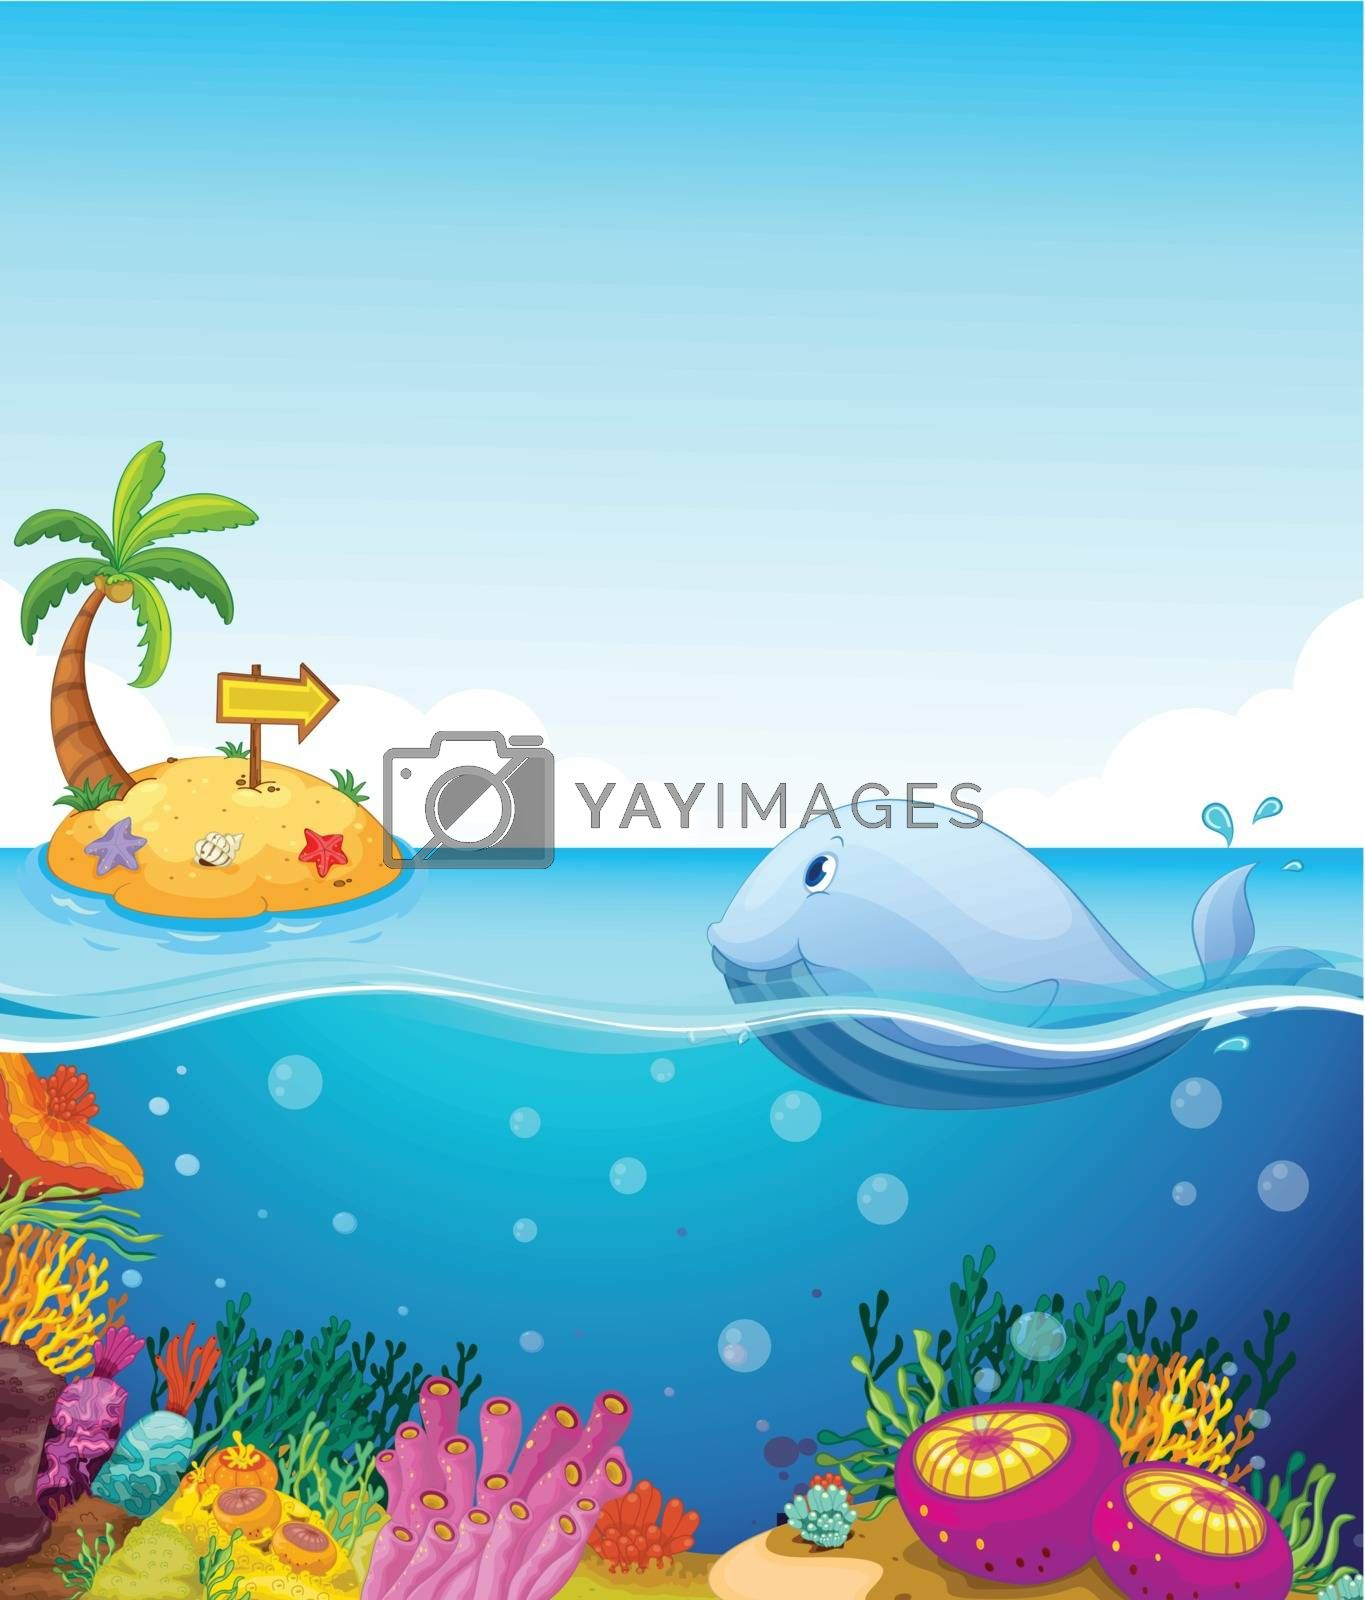 Illustration of a fish looking at the island with an arrow